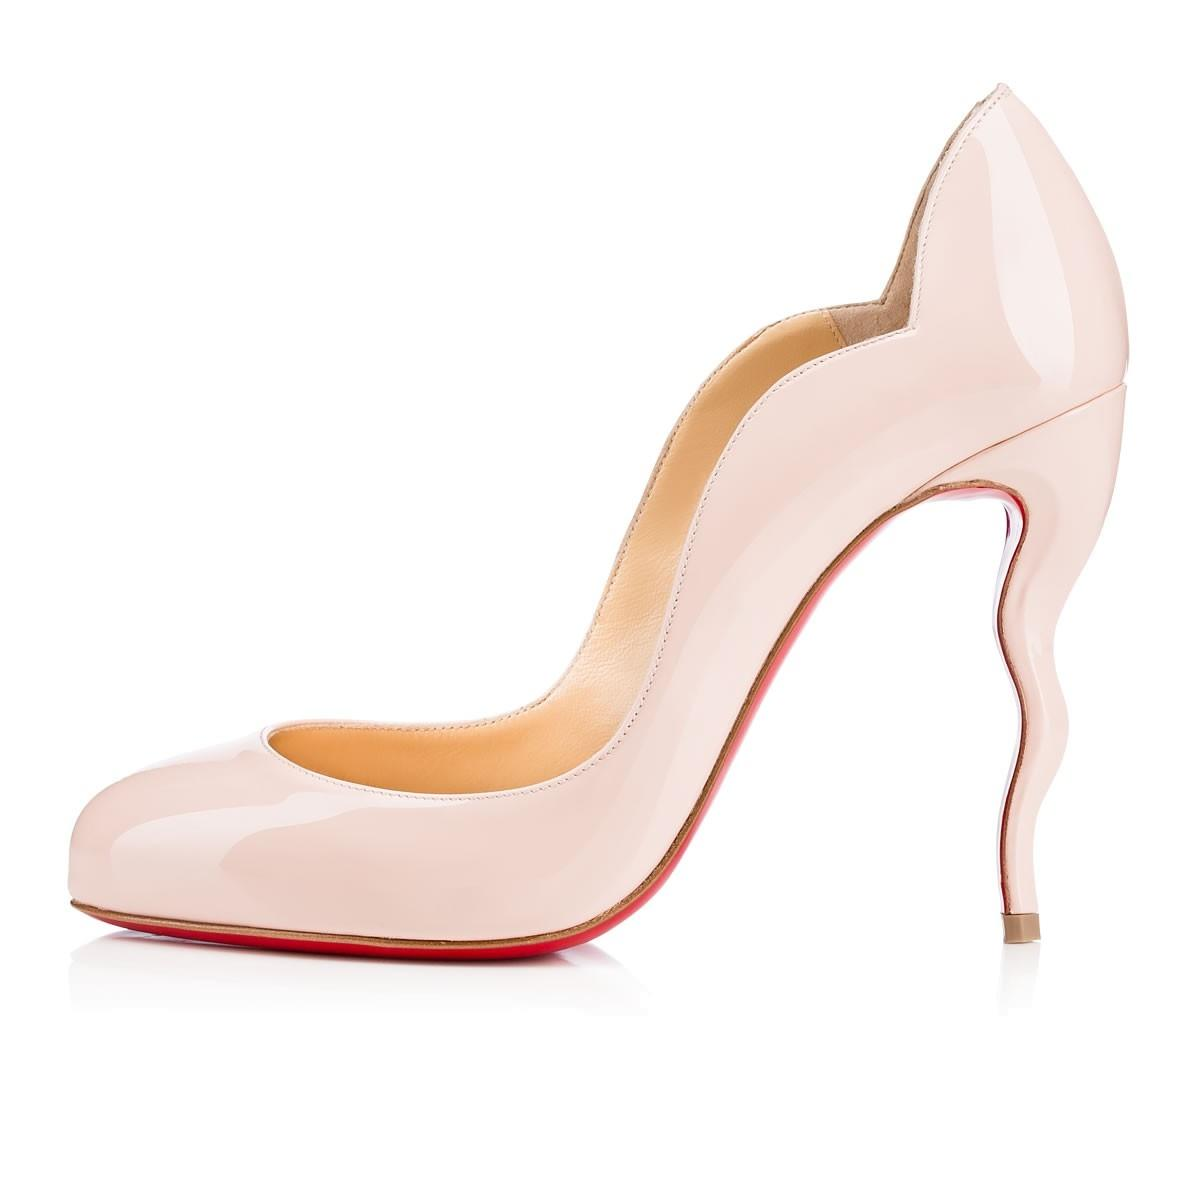 cheap sale under $60 limited edition cheap price Christian Louboutin Wawy Dolly 100 Pumps free shipping under $60 sale Cheapest vtl5WPS